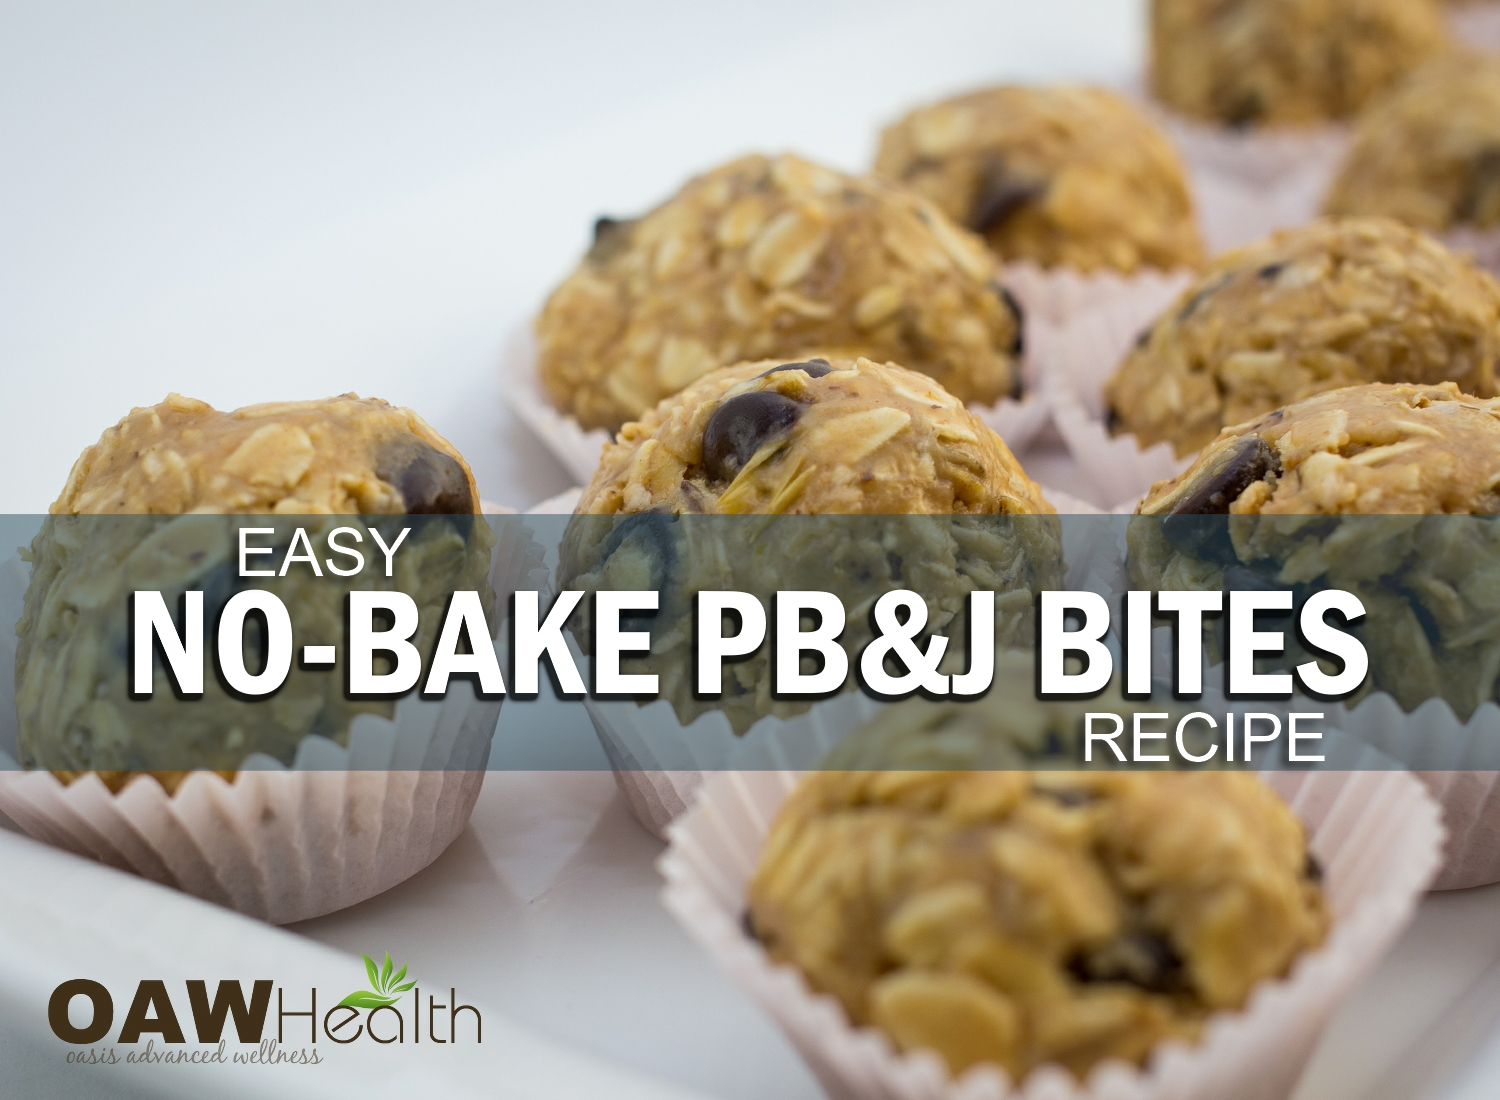 Easy No-Bake PB&J Bites